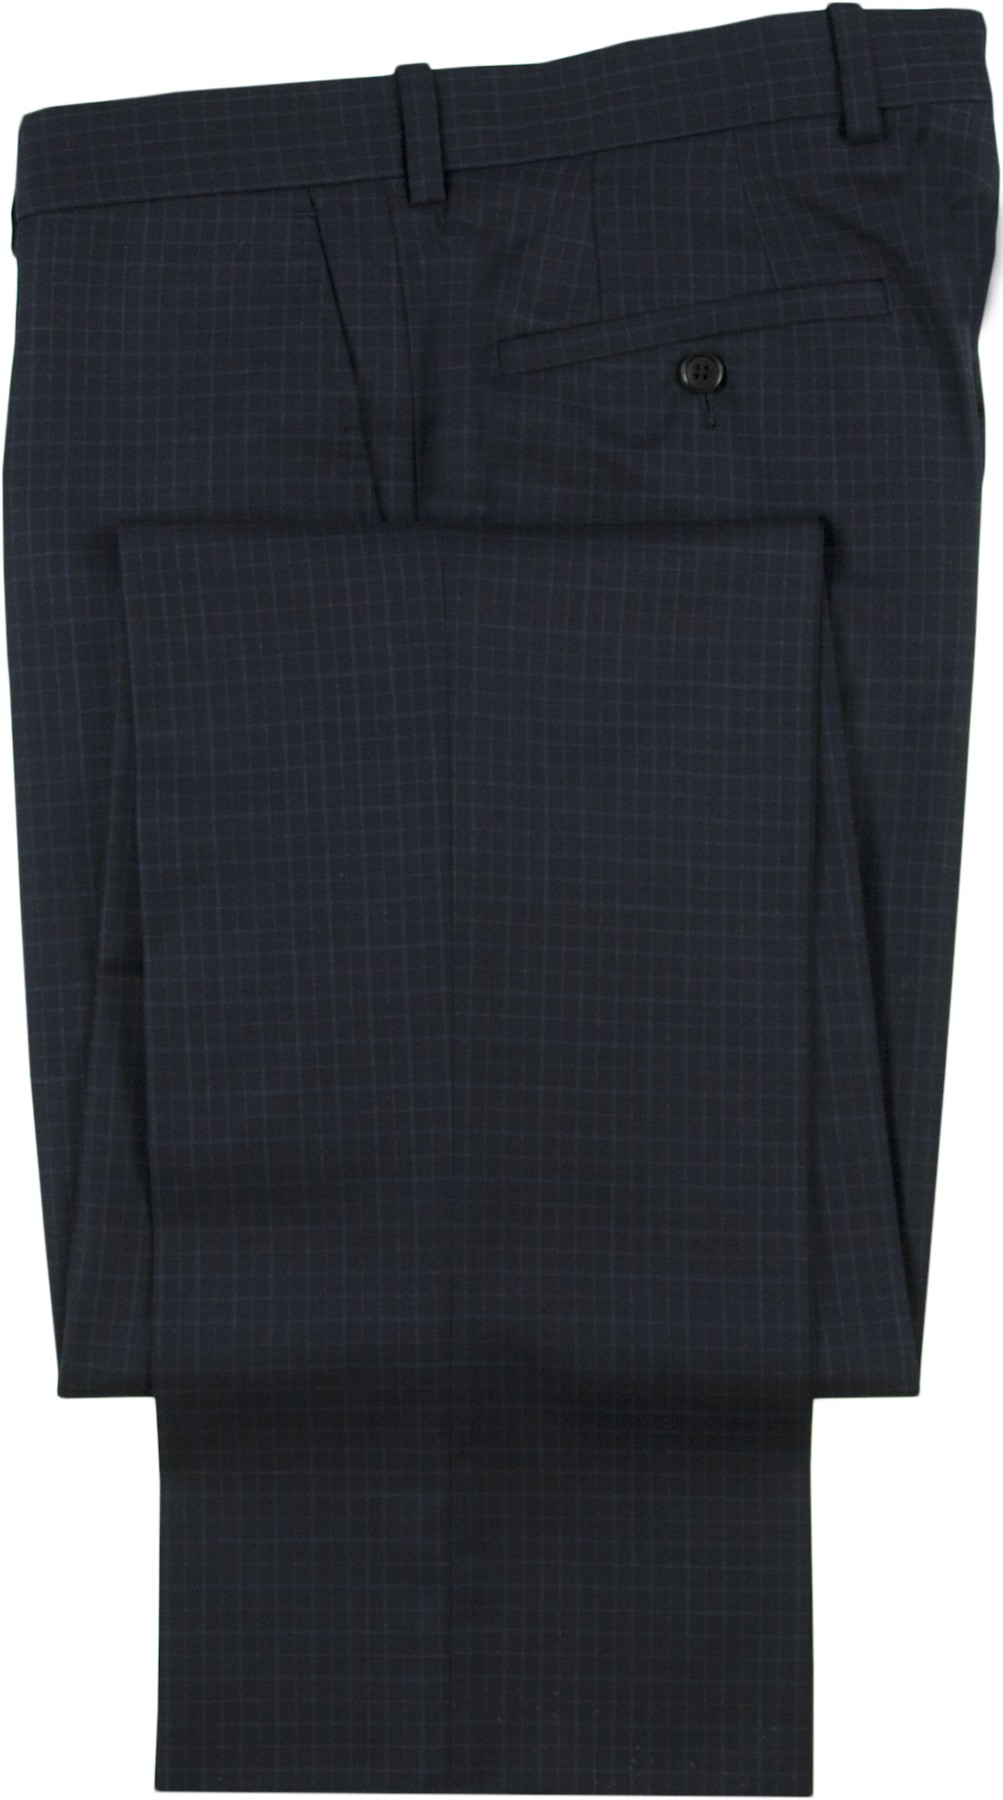 "Aristo 18 ""Stirling"" Flat Front Trouser - Luxury Wool Checks"